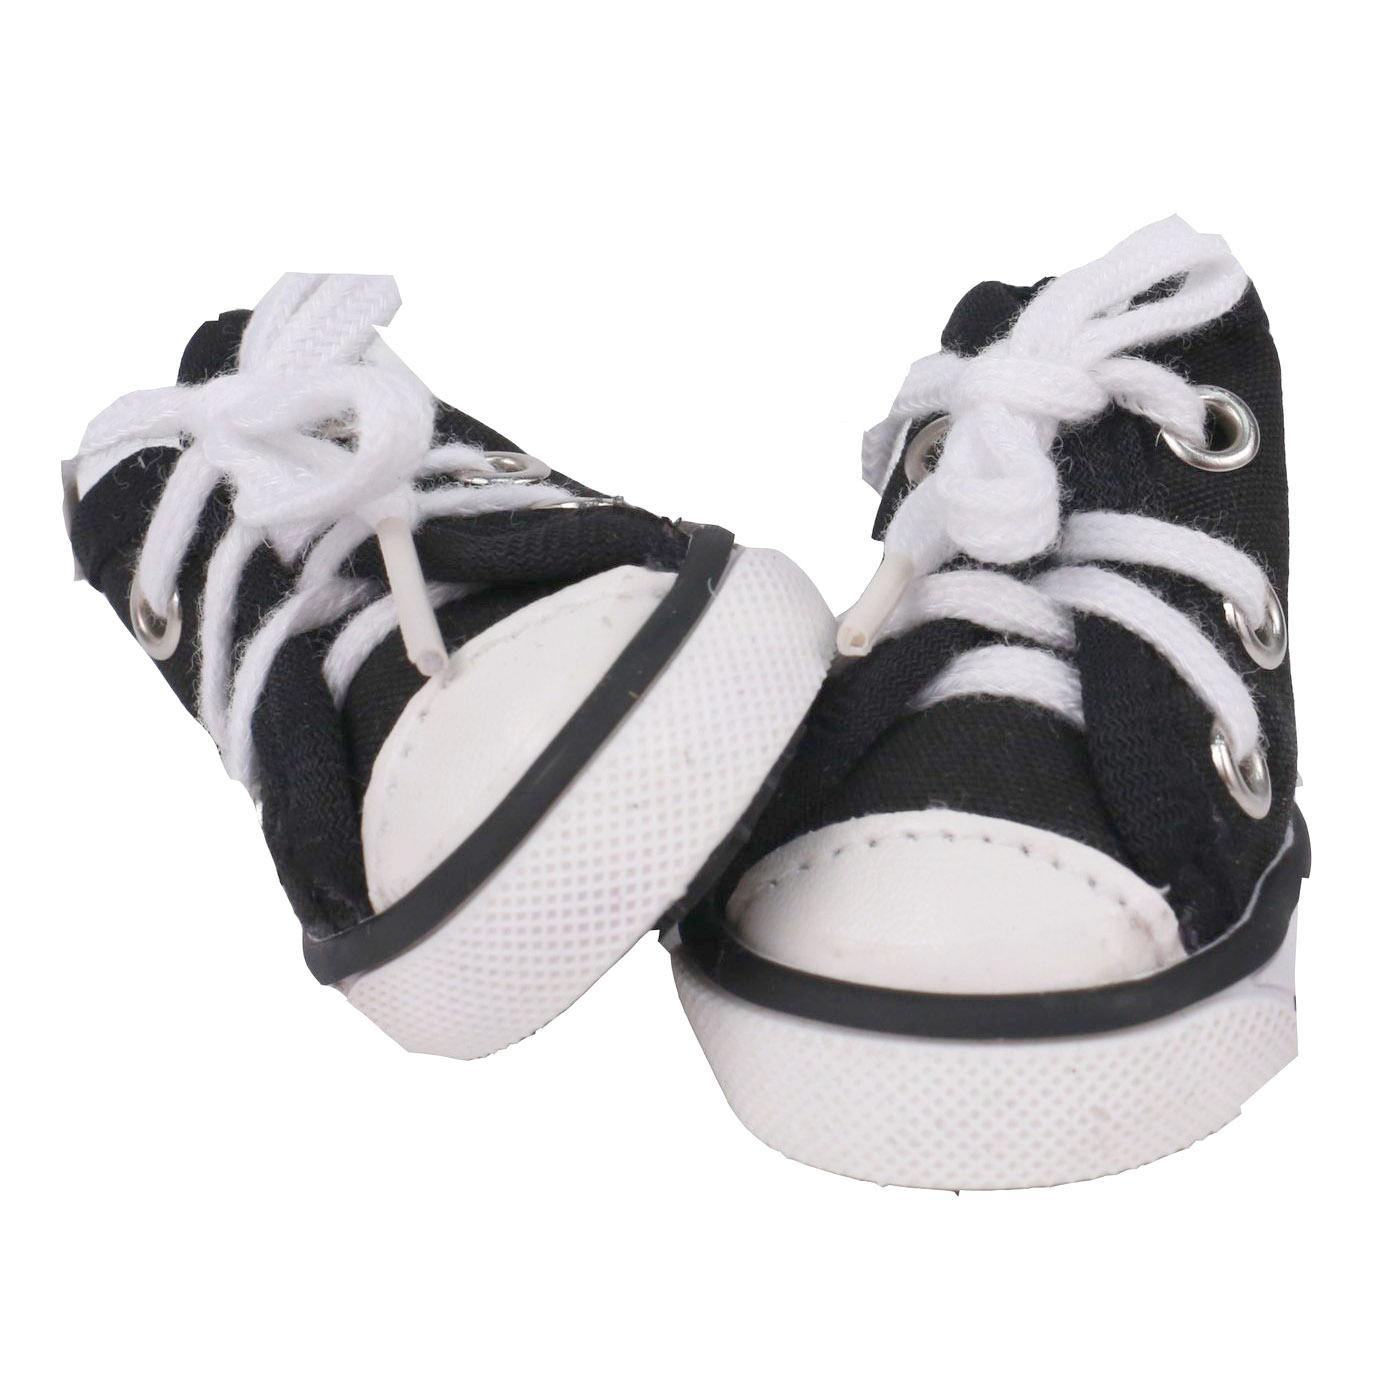 Pet Life 'Extreme-Skater' Canvas Dog Sneakers - Navy and White